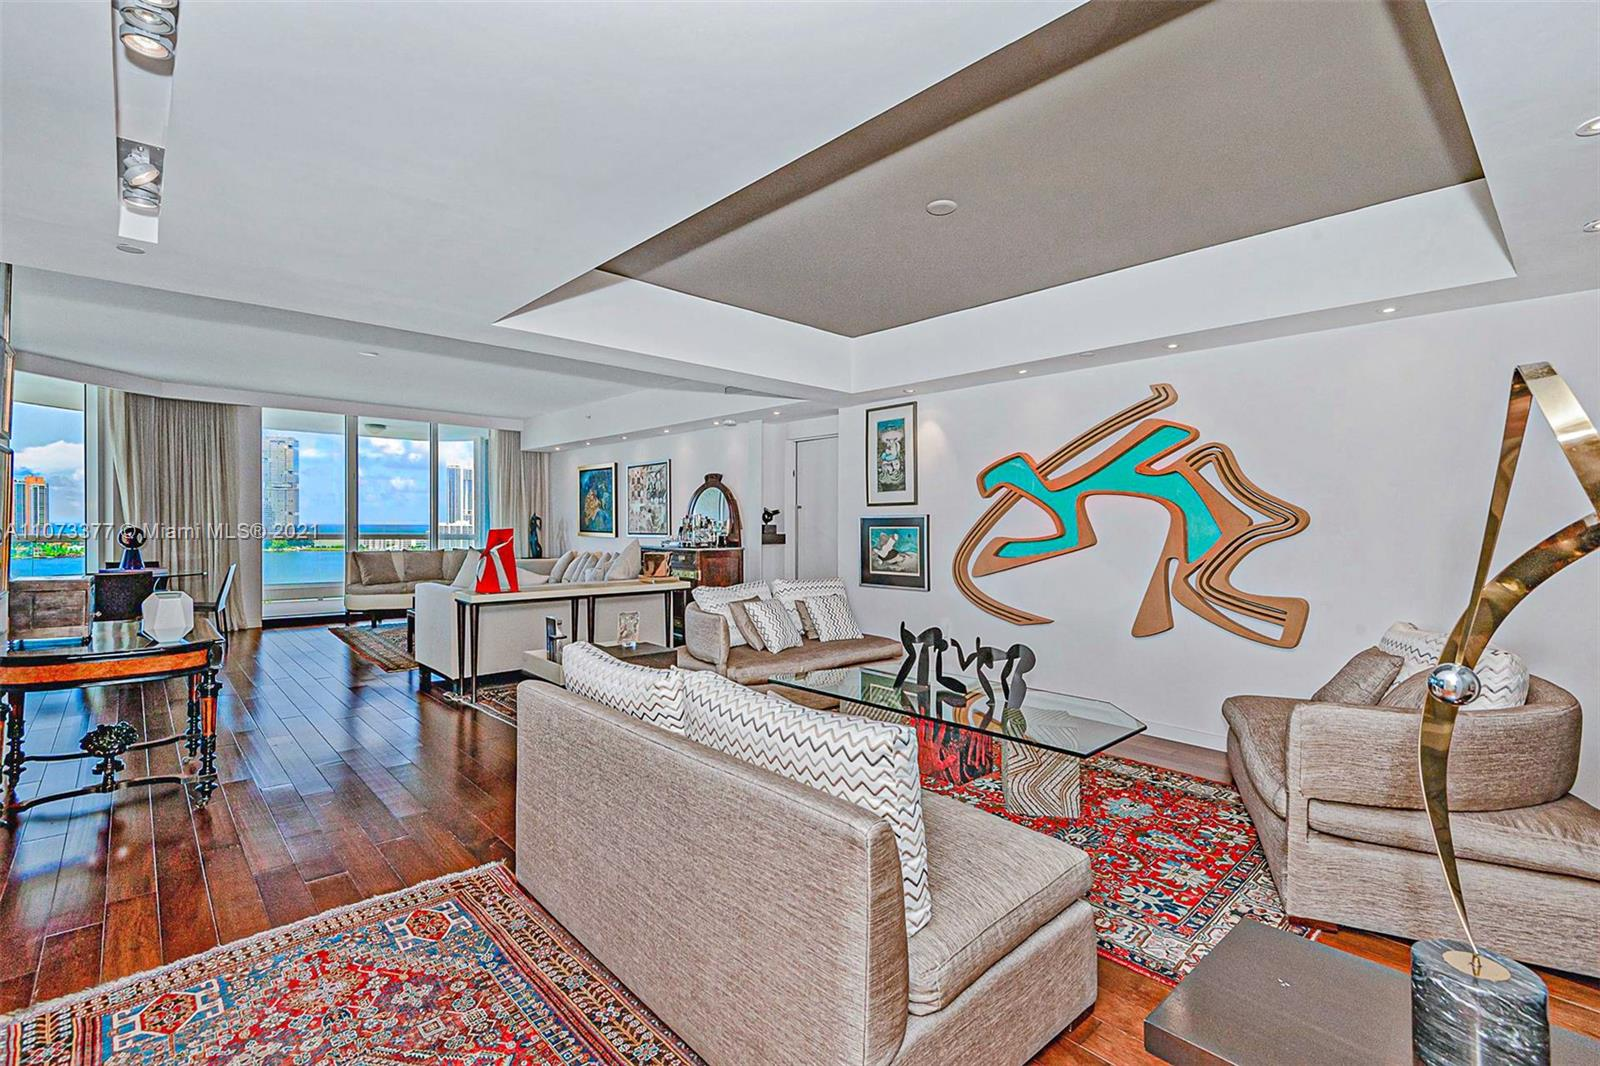 """A unique opportunity new to the market- rare 01 line!  Stunning 5 bed 5  1/2 bath residence with additional """"Studio Suite"""" included in the price on 4th floor.  Your private elevators, a foyer entrance. Custom-designed residence with, marble floors, and beautiful details throughout. Amazing views of the Intracoastal and ocean. Enjoy the lifestyle of Bella Mare and Williams Island, with 16 tennis courts, restaurants, a marina, a children's playground, spa, and dog park! This building features a private movie theater, fitness club, card room, juice bar, wine room a social room. One-time membership initiation fee of $7,500. Annual club membership fee of $1,750 as well as an annual food & beverage fee of $1,600+tax. Contact the listing agent for a showing!"""